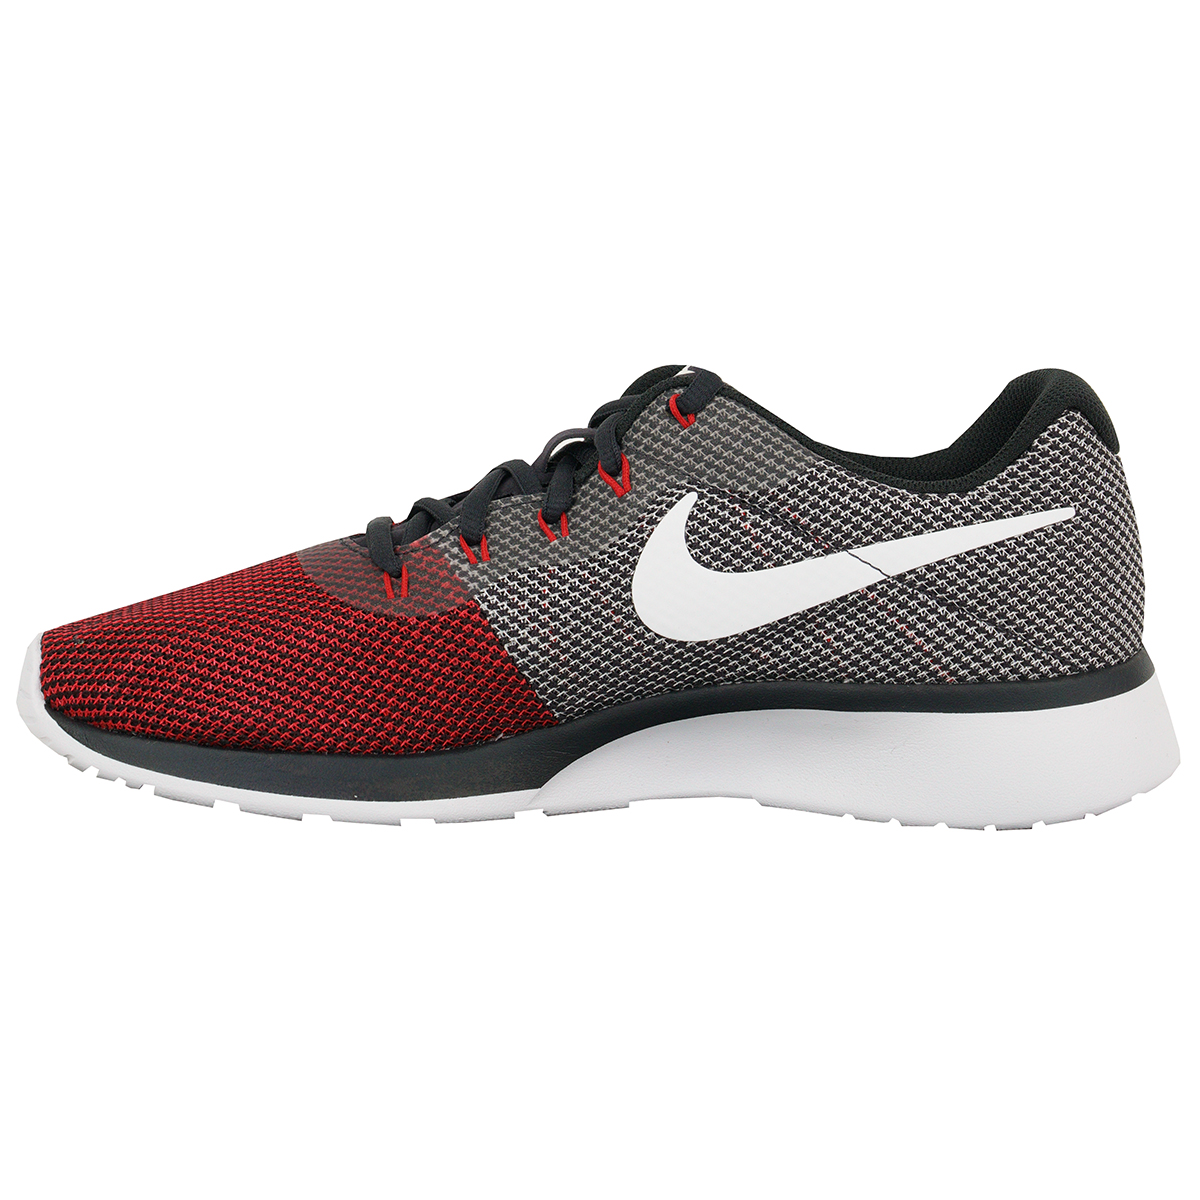 Nike-Men-039-s-Tanjun-Racer-Running-Shoes thumbnail 13